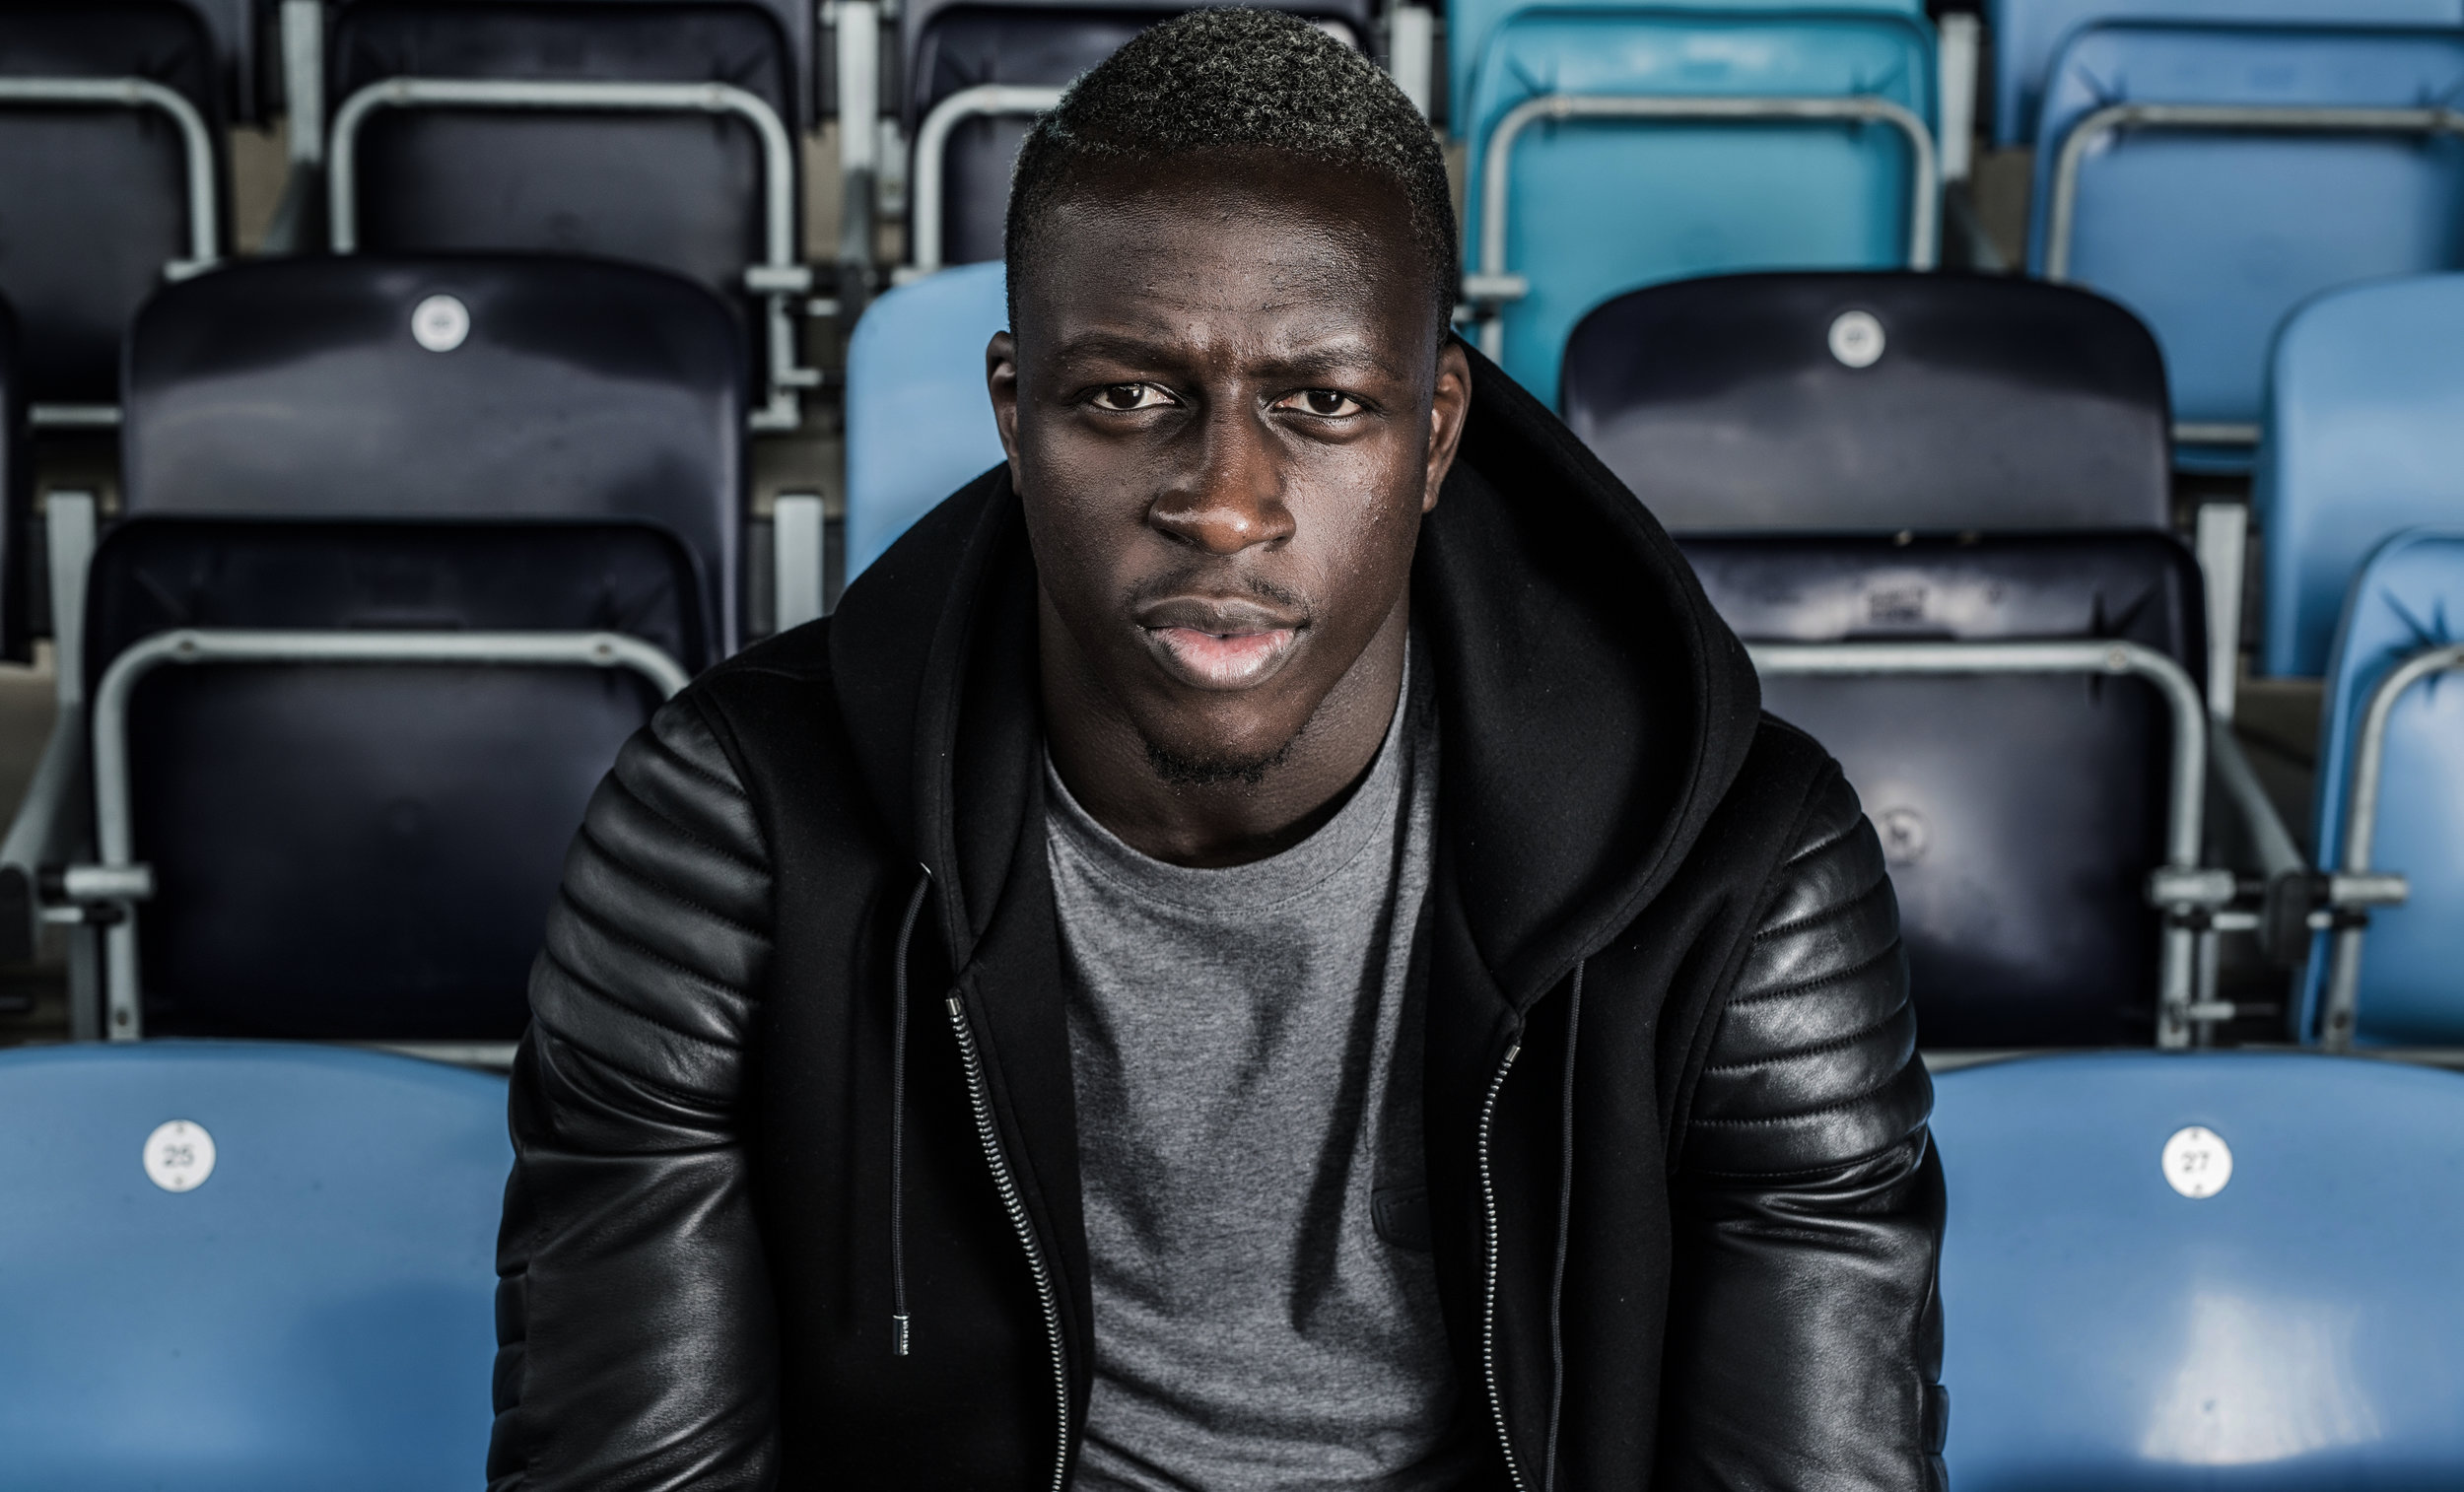 Benjamin Mendy is a French professional footballer who plays as a left back for Premier League club Manchester City and the France national team.  pictured at tarining ground Photo Paul Cooper